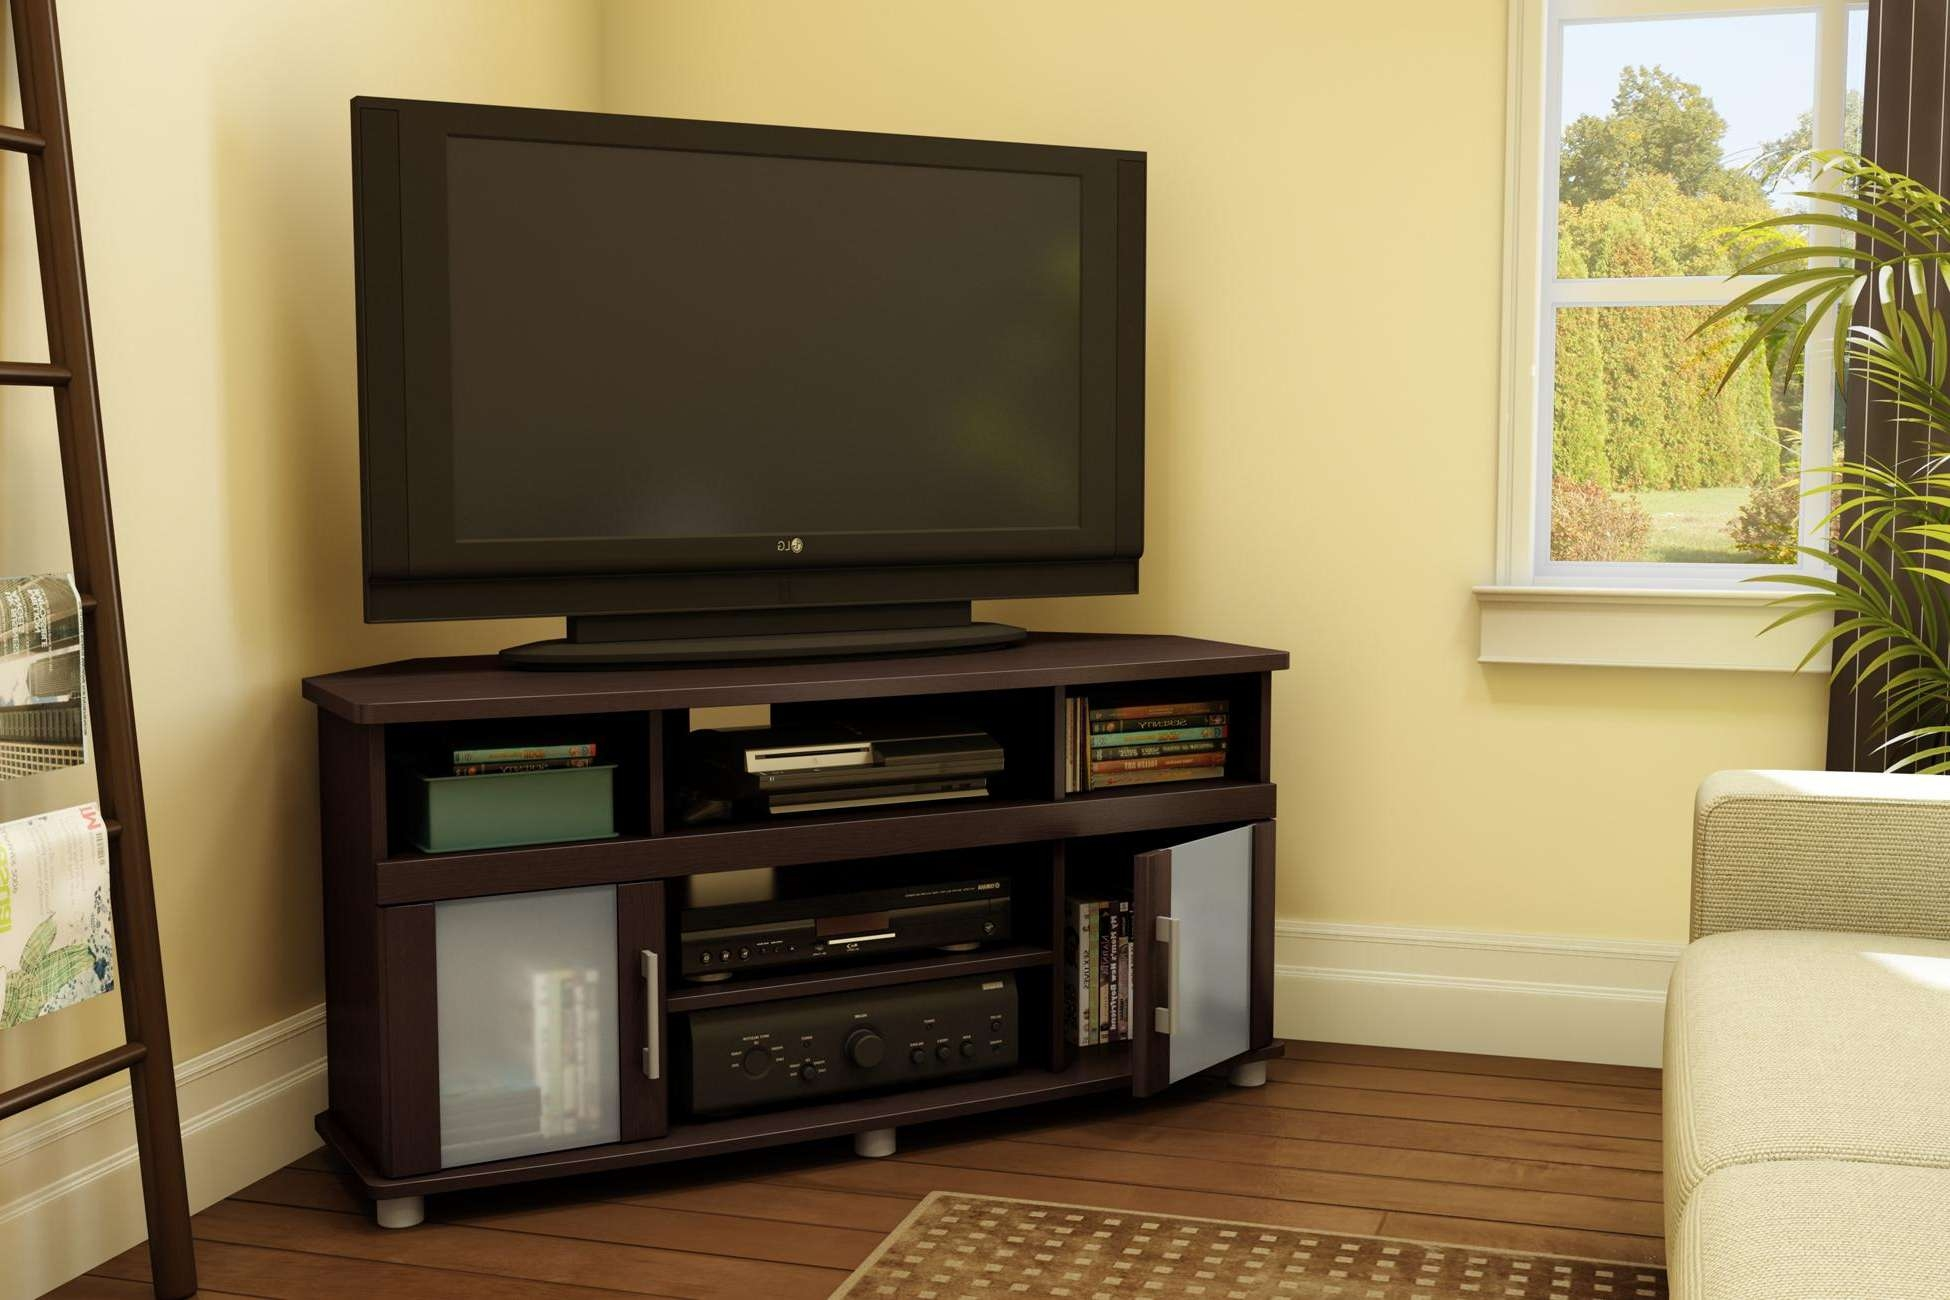 Furniture Accessories : Corner Tv Stand Ideas Triangular Shaped Pertaining To Triangular Tv Stands (View 7 of 15)